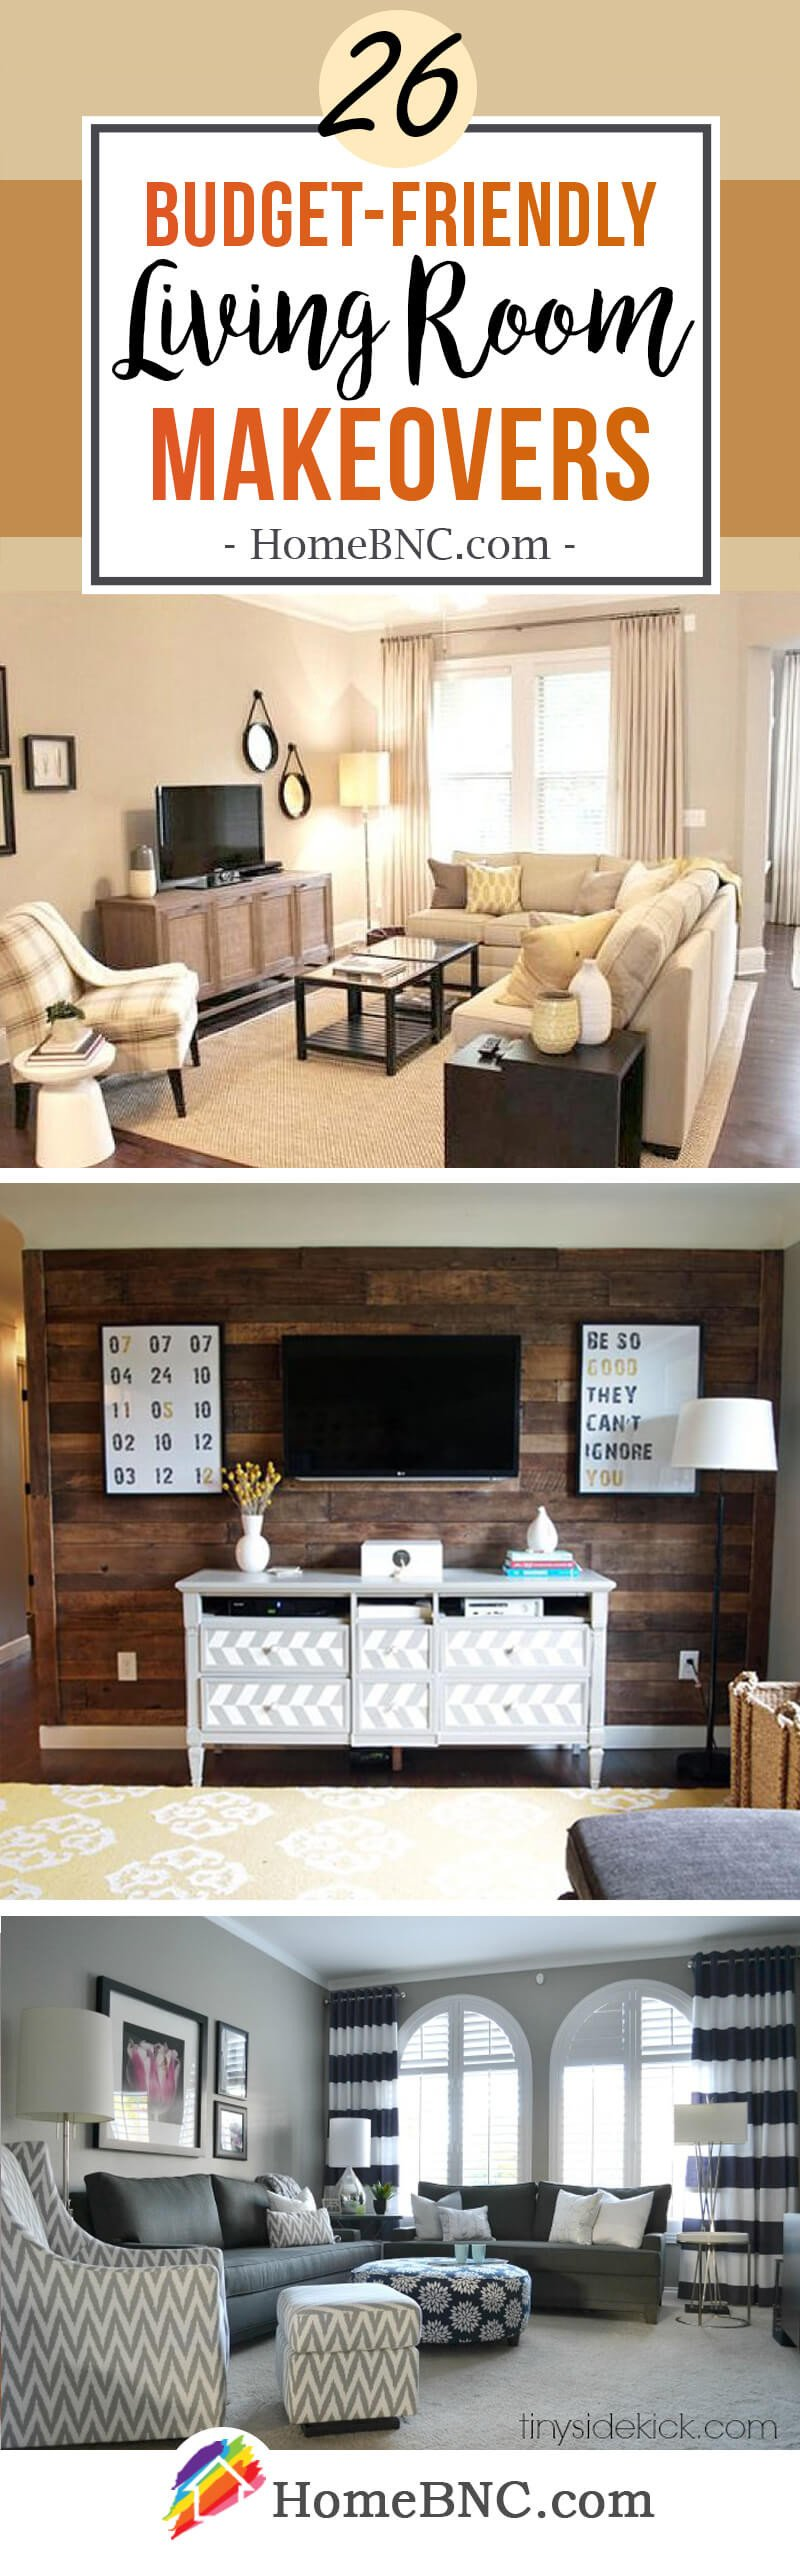 Small Living Room Makeover Ideas 26 Best Bud Friendly Living Room Makeover Ideas for 2019